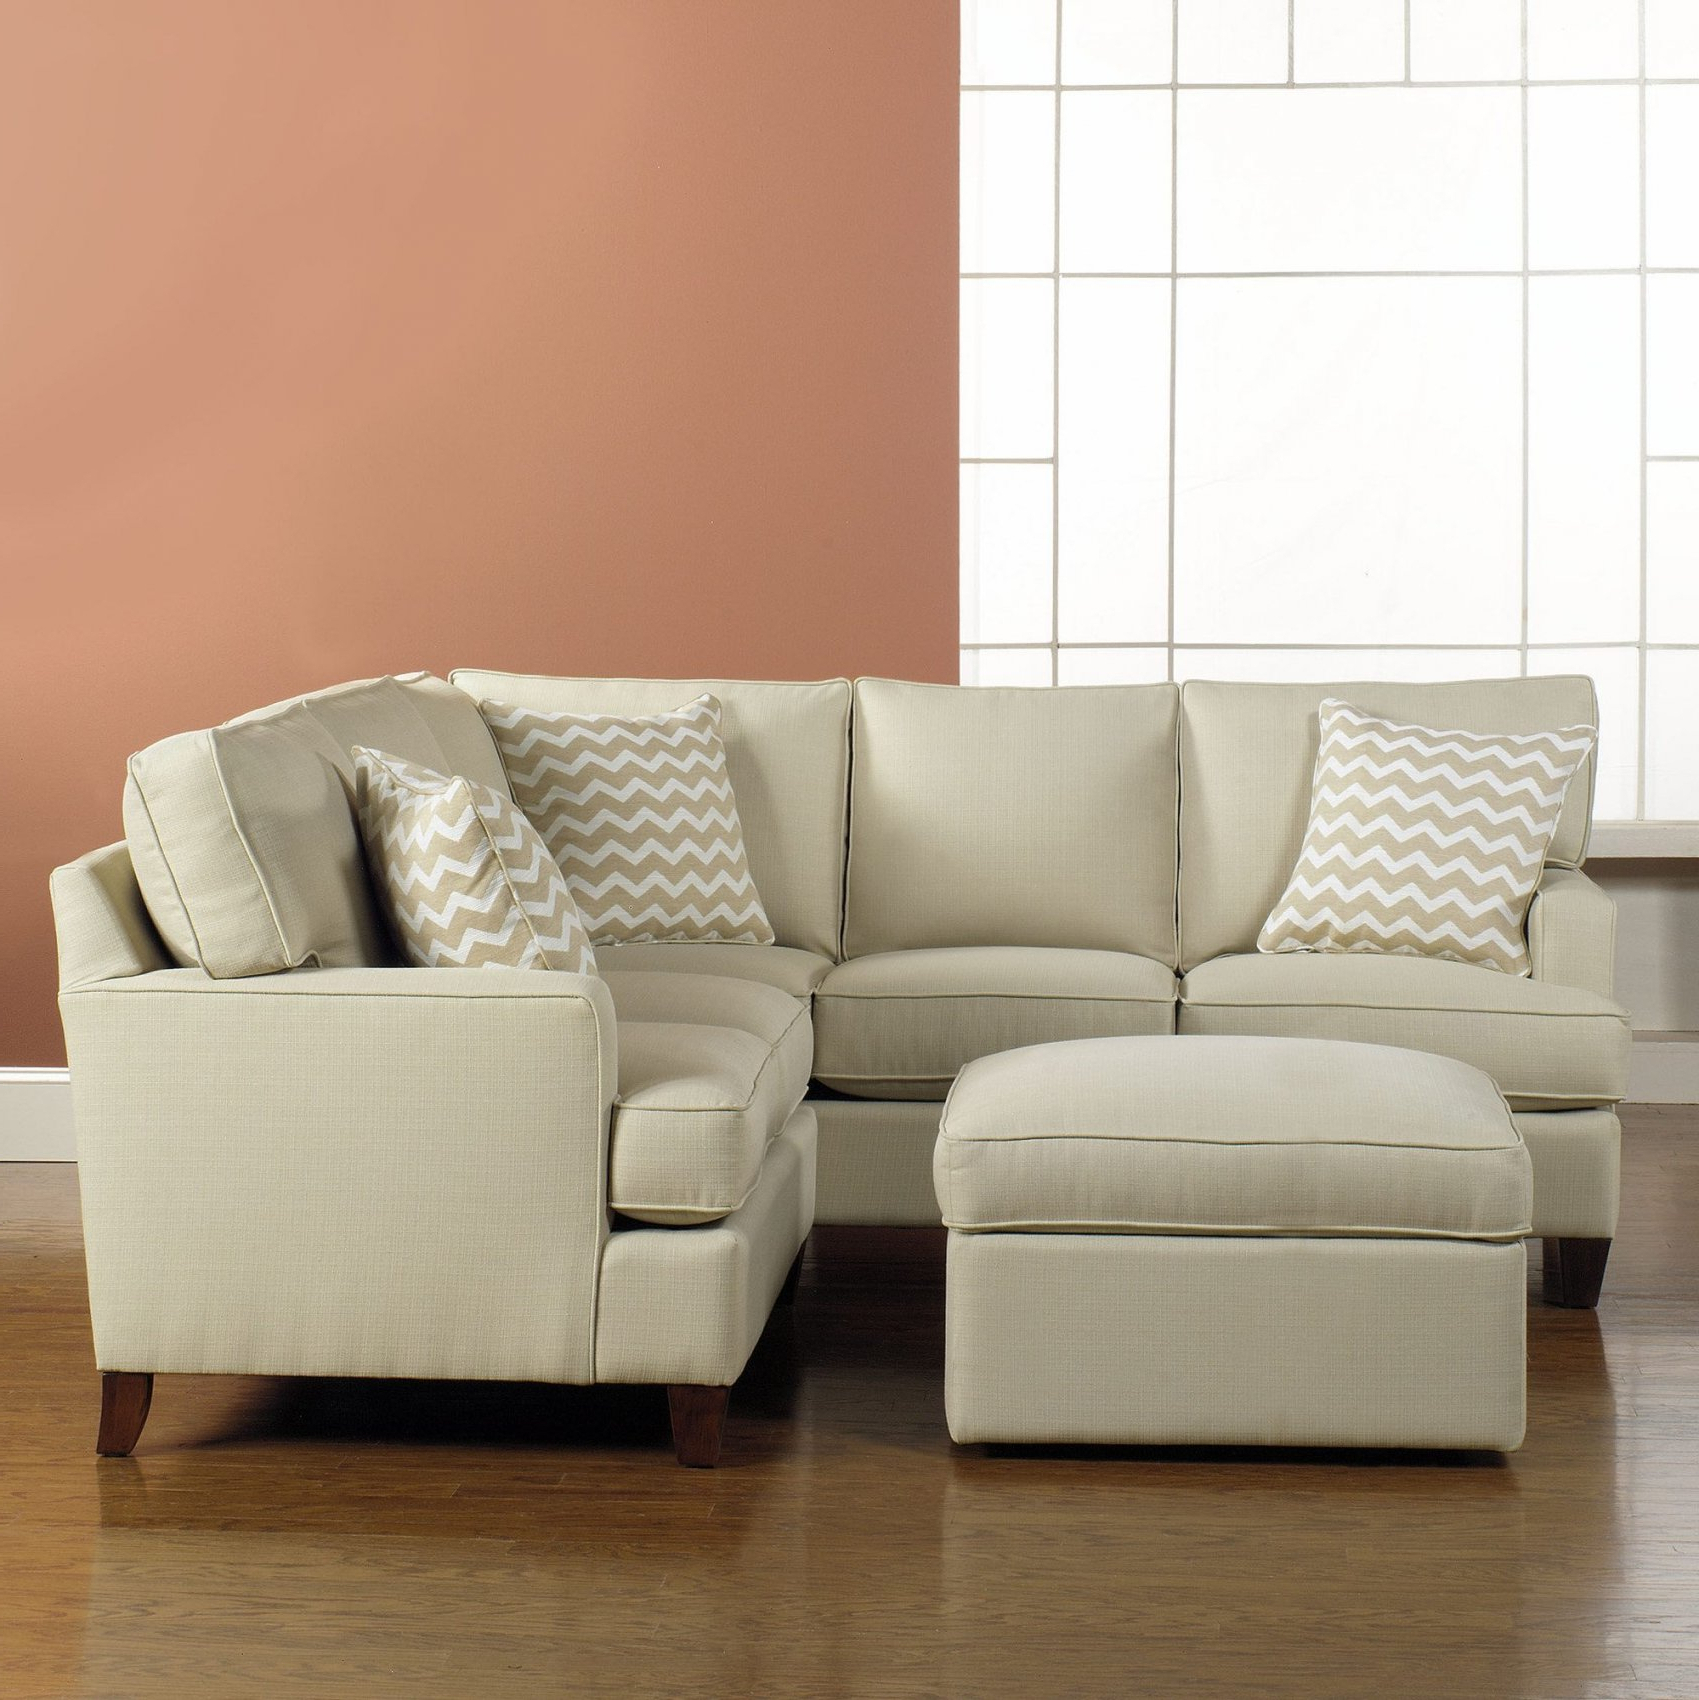 2018 Avery 2 Piece Sectionals With Laf Armless Chaise For Seating – Small Sectional Couch – Pickndecor (View 2 of 20)